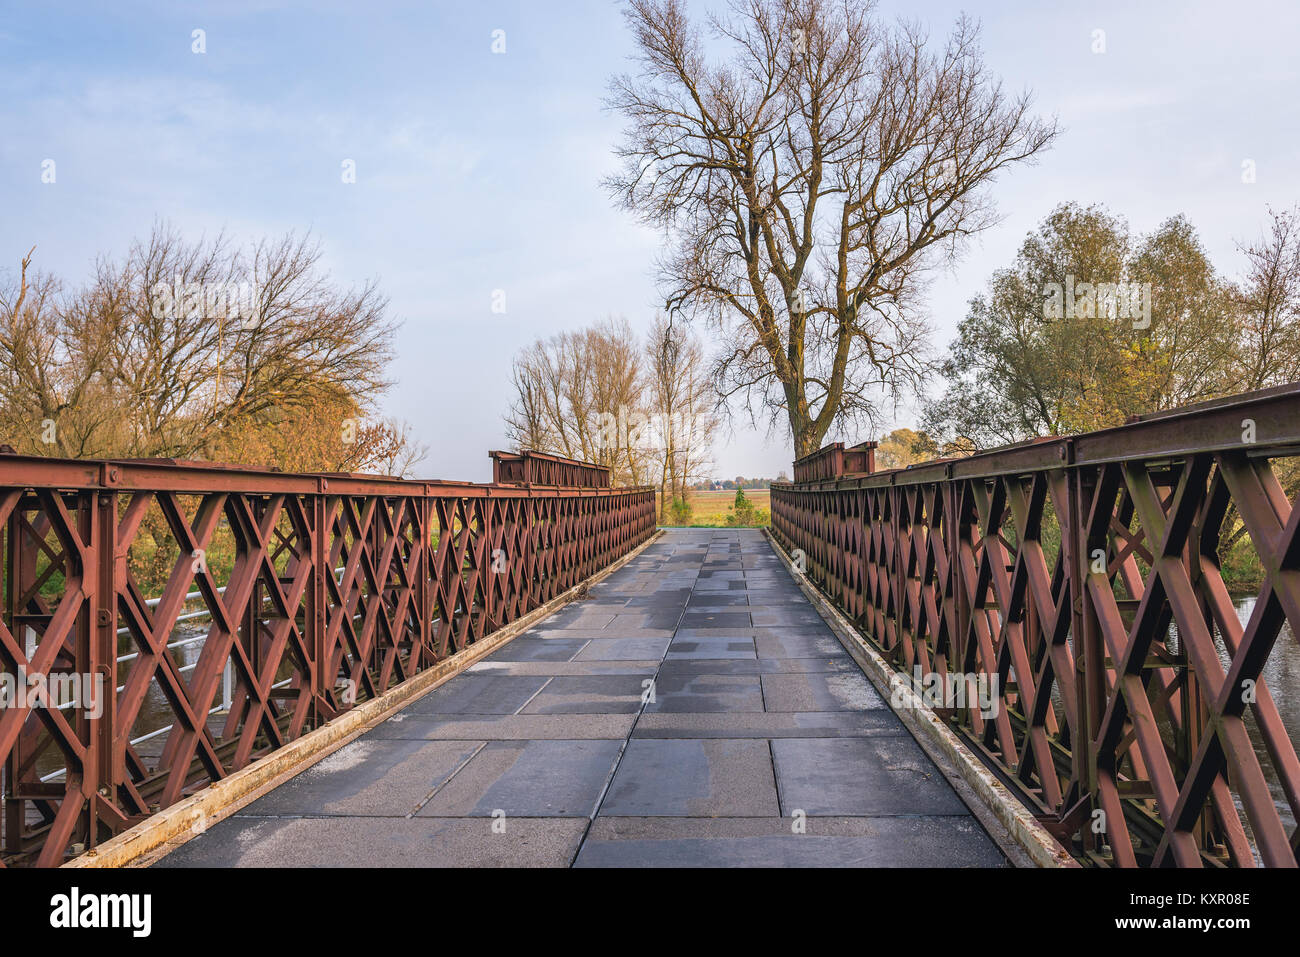 Old bridge over Bzura River in Witkowice village, Sochaczew County in Masovian Voivodeship of Poland - Stock Image